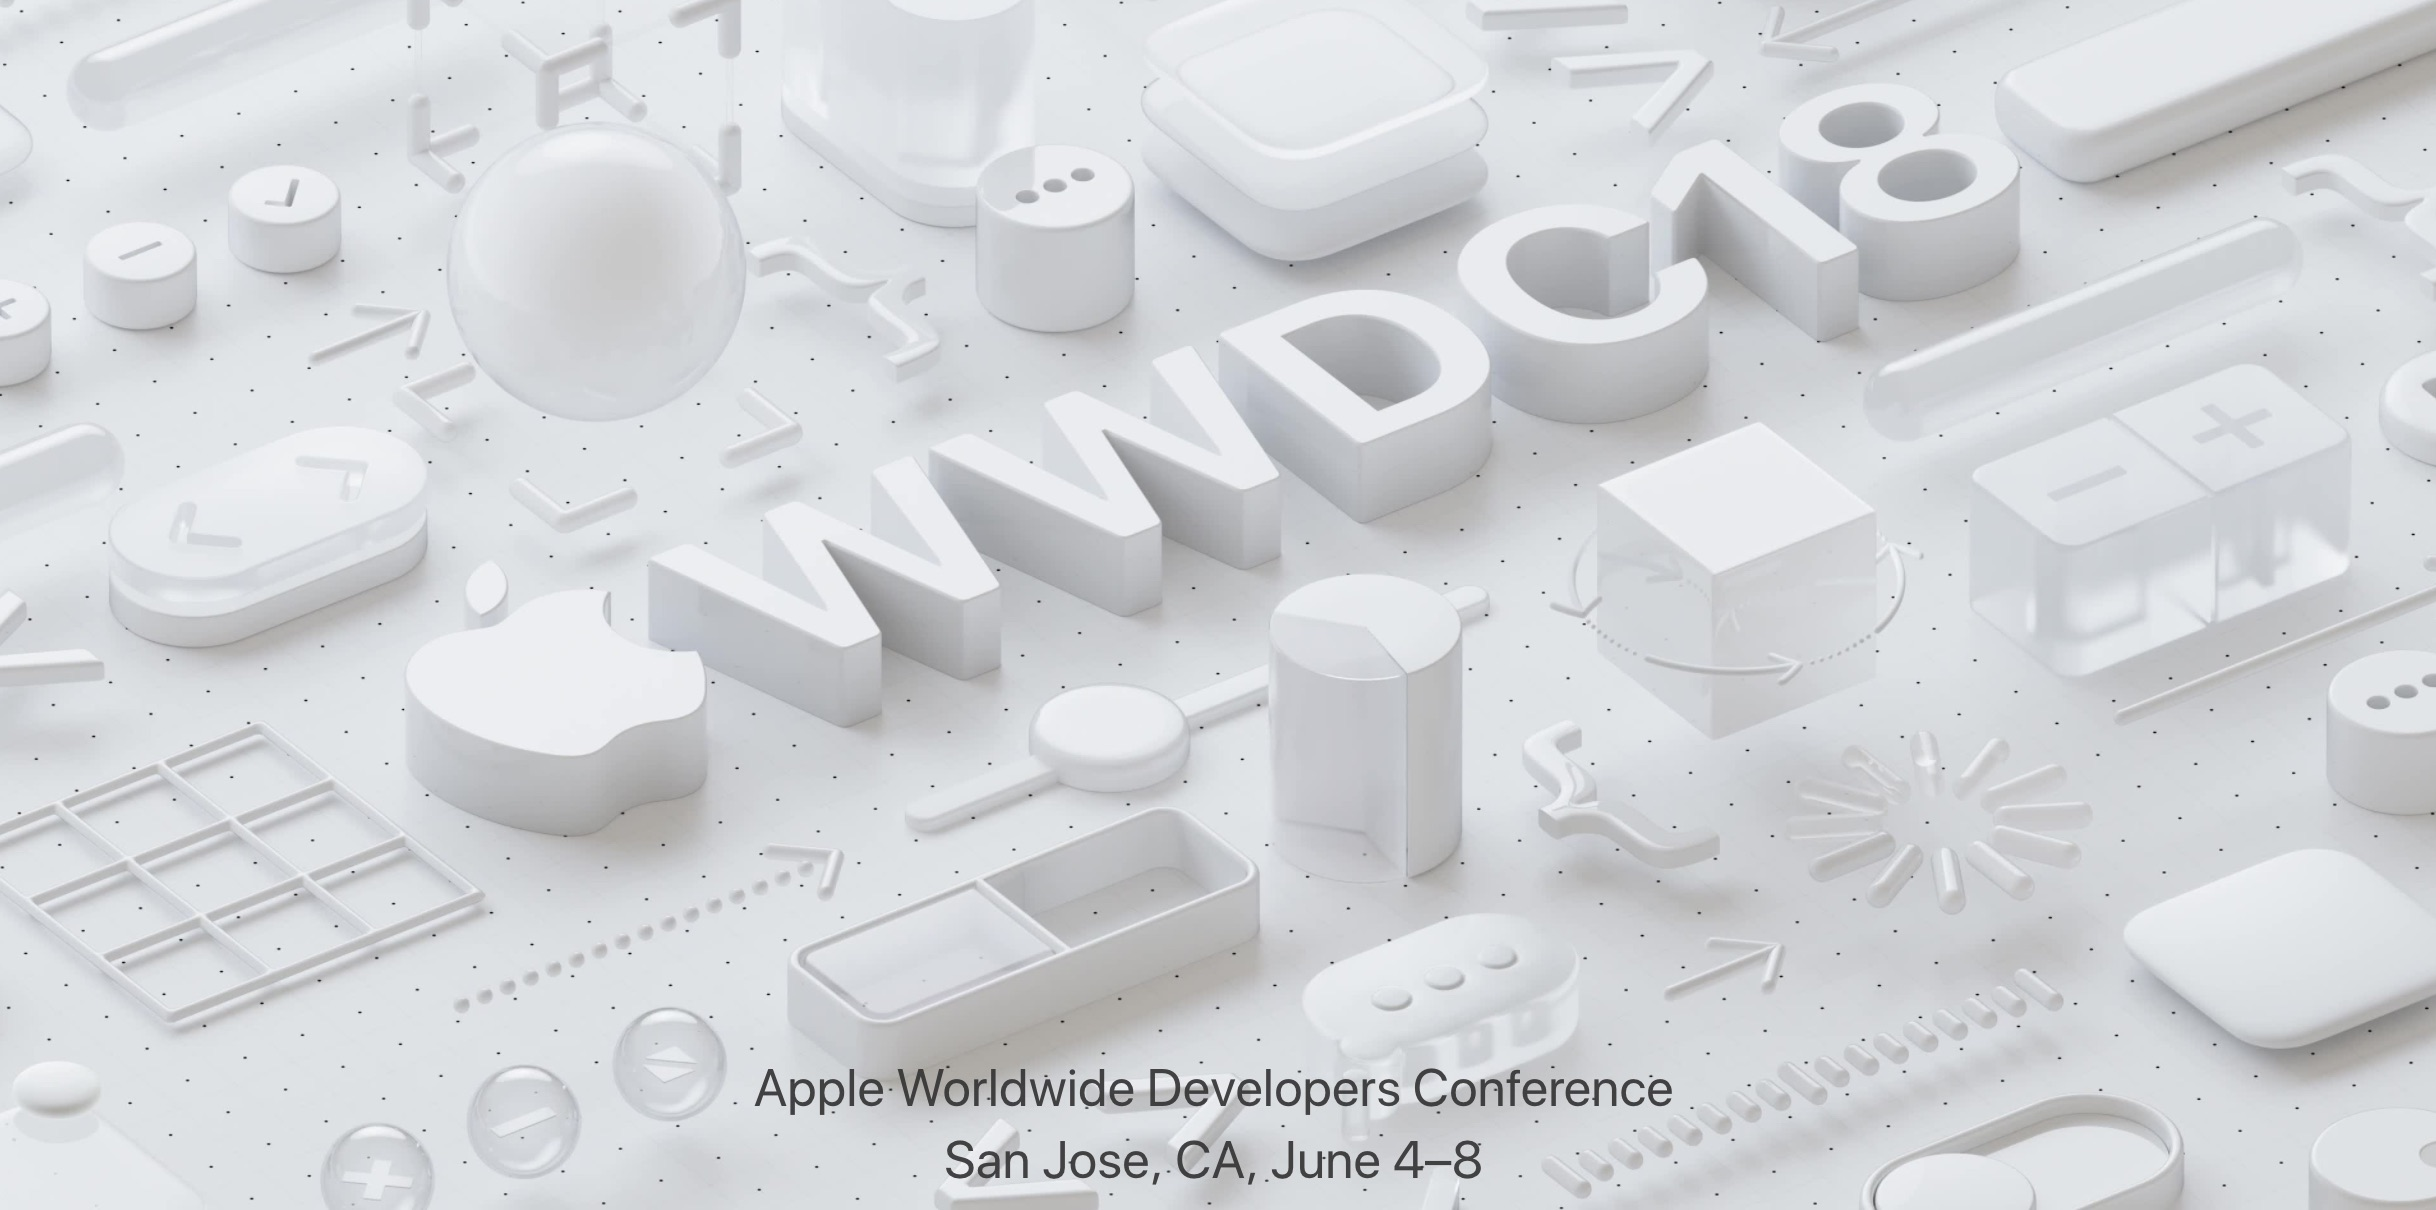 Apple's WWDC to Run From June 4-8, Registration Now Open